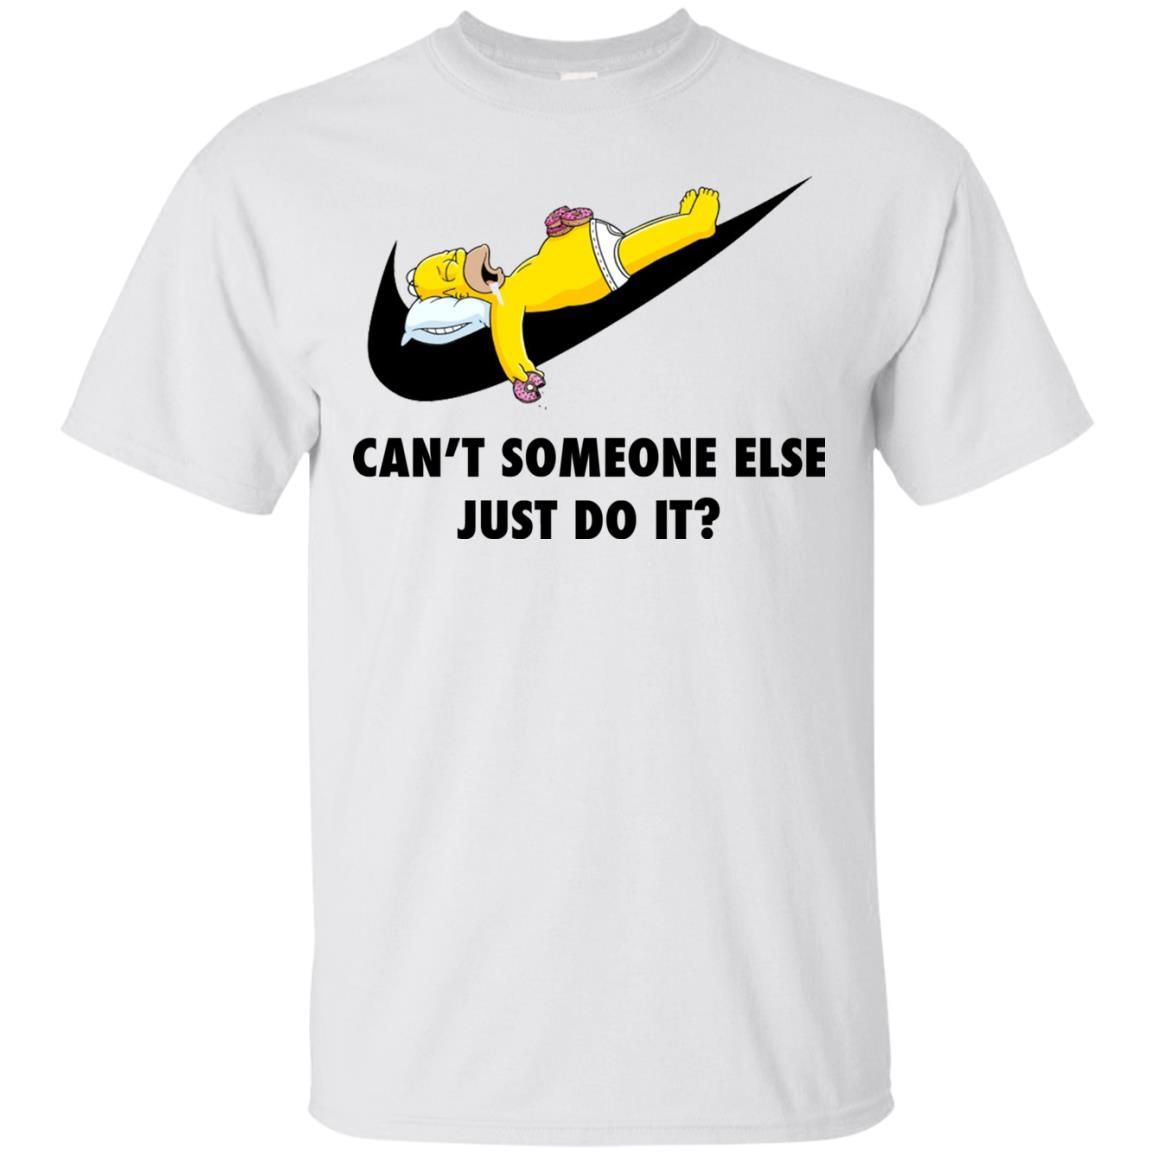 image 1403 - The Simpsons: Can't someone eles just do it shirt, tank, hoodie